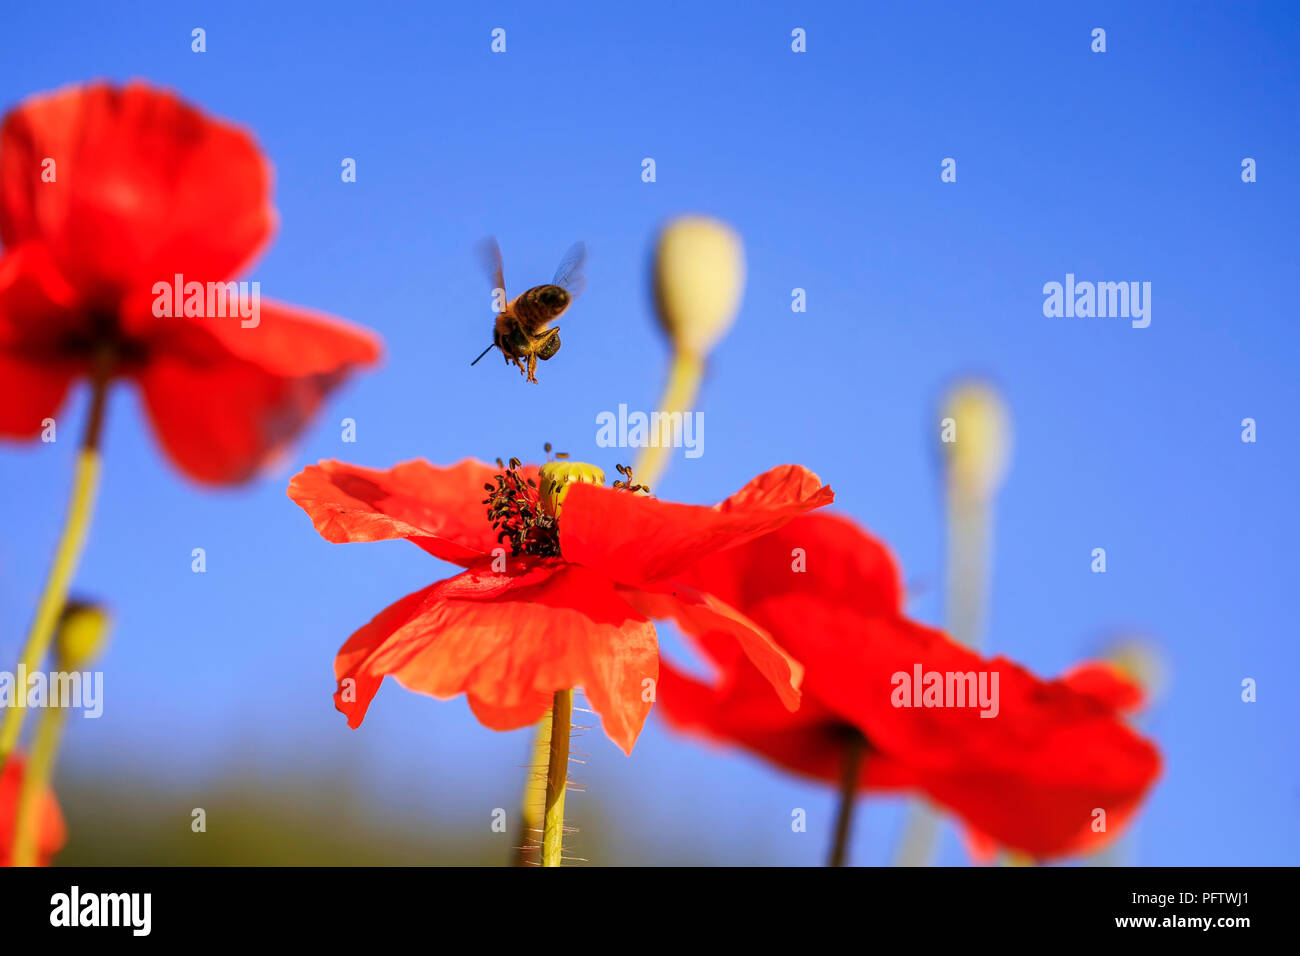 Summer Landscape With Little Bee Flying And Collecting Nectar With